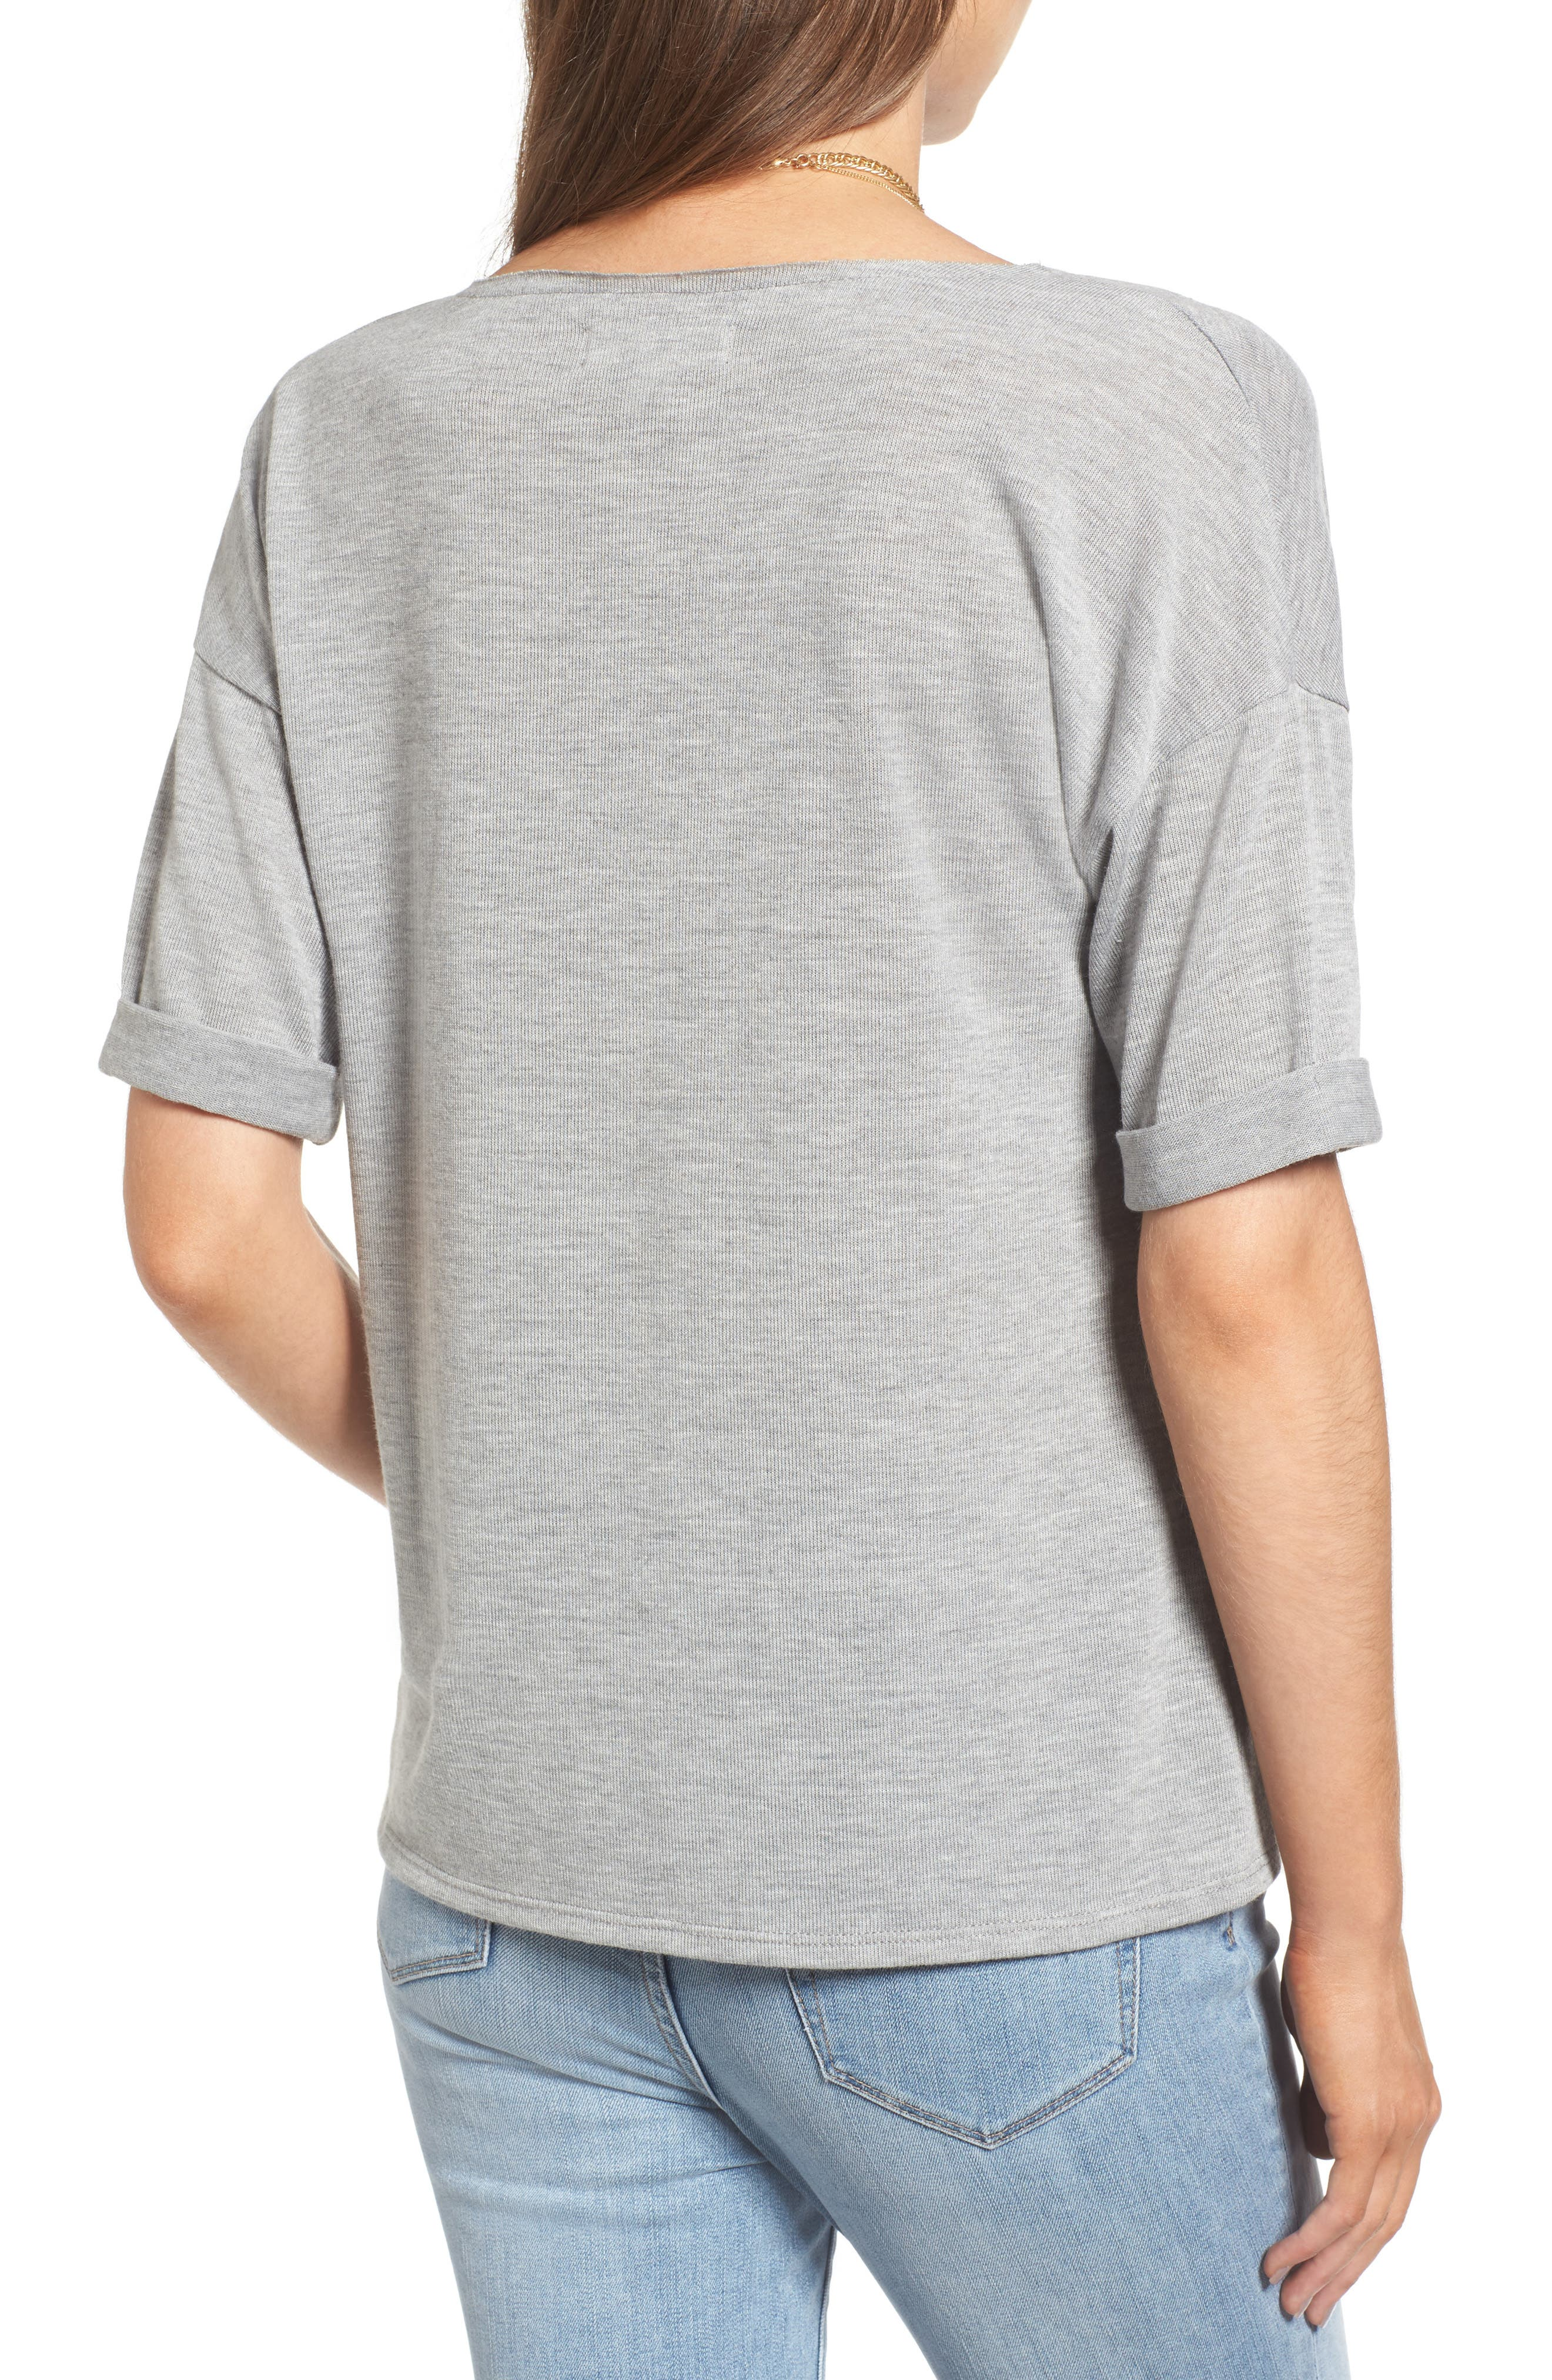 x Something Navy Easy Tee,                             Alternate thumbnail 3, color,                             Grey Heather